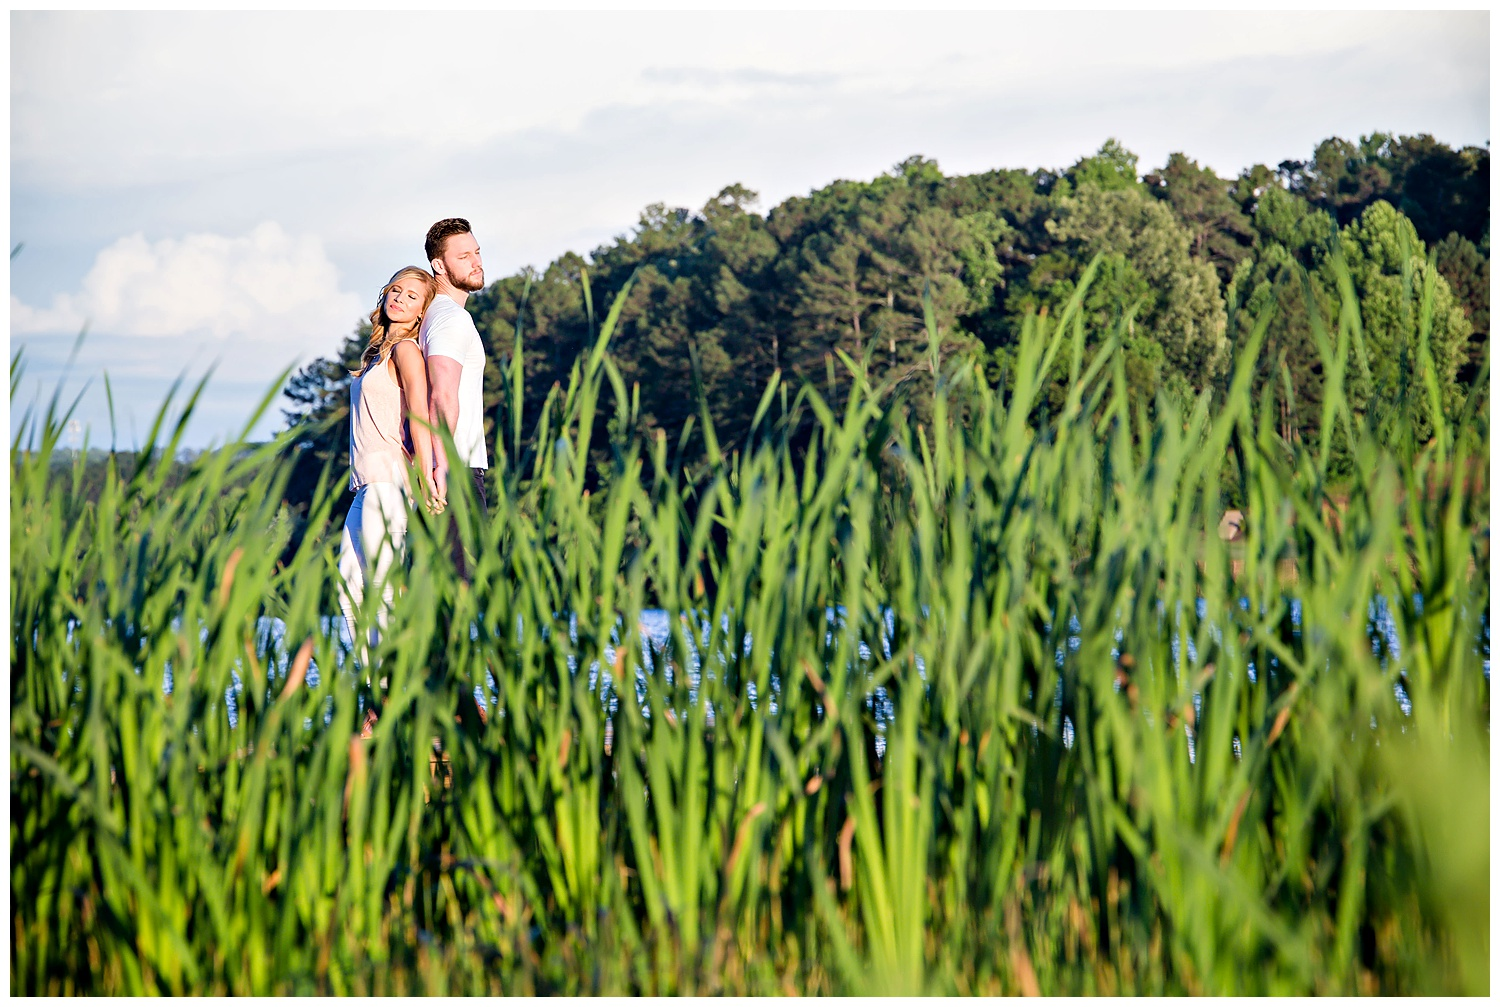 Lake Acworth engagement session with Gary Lun Photography